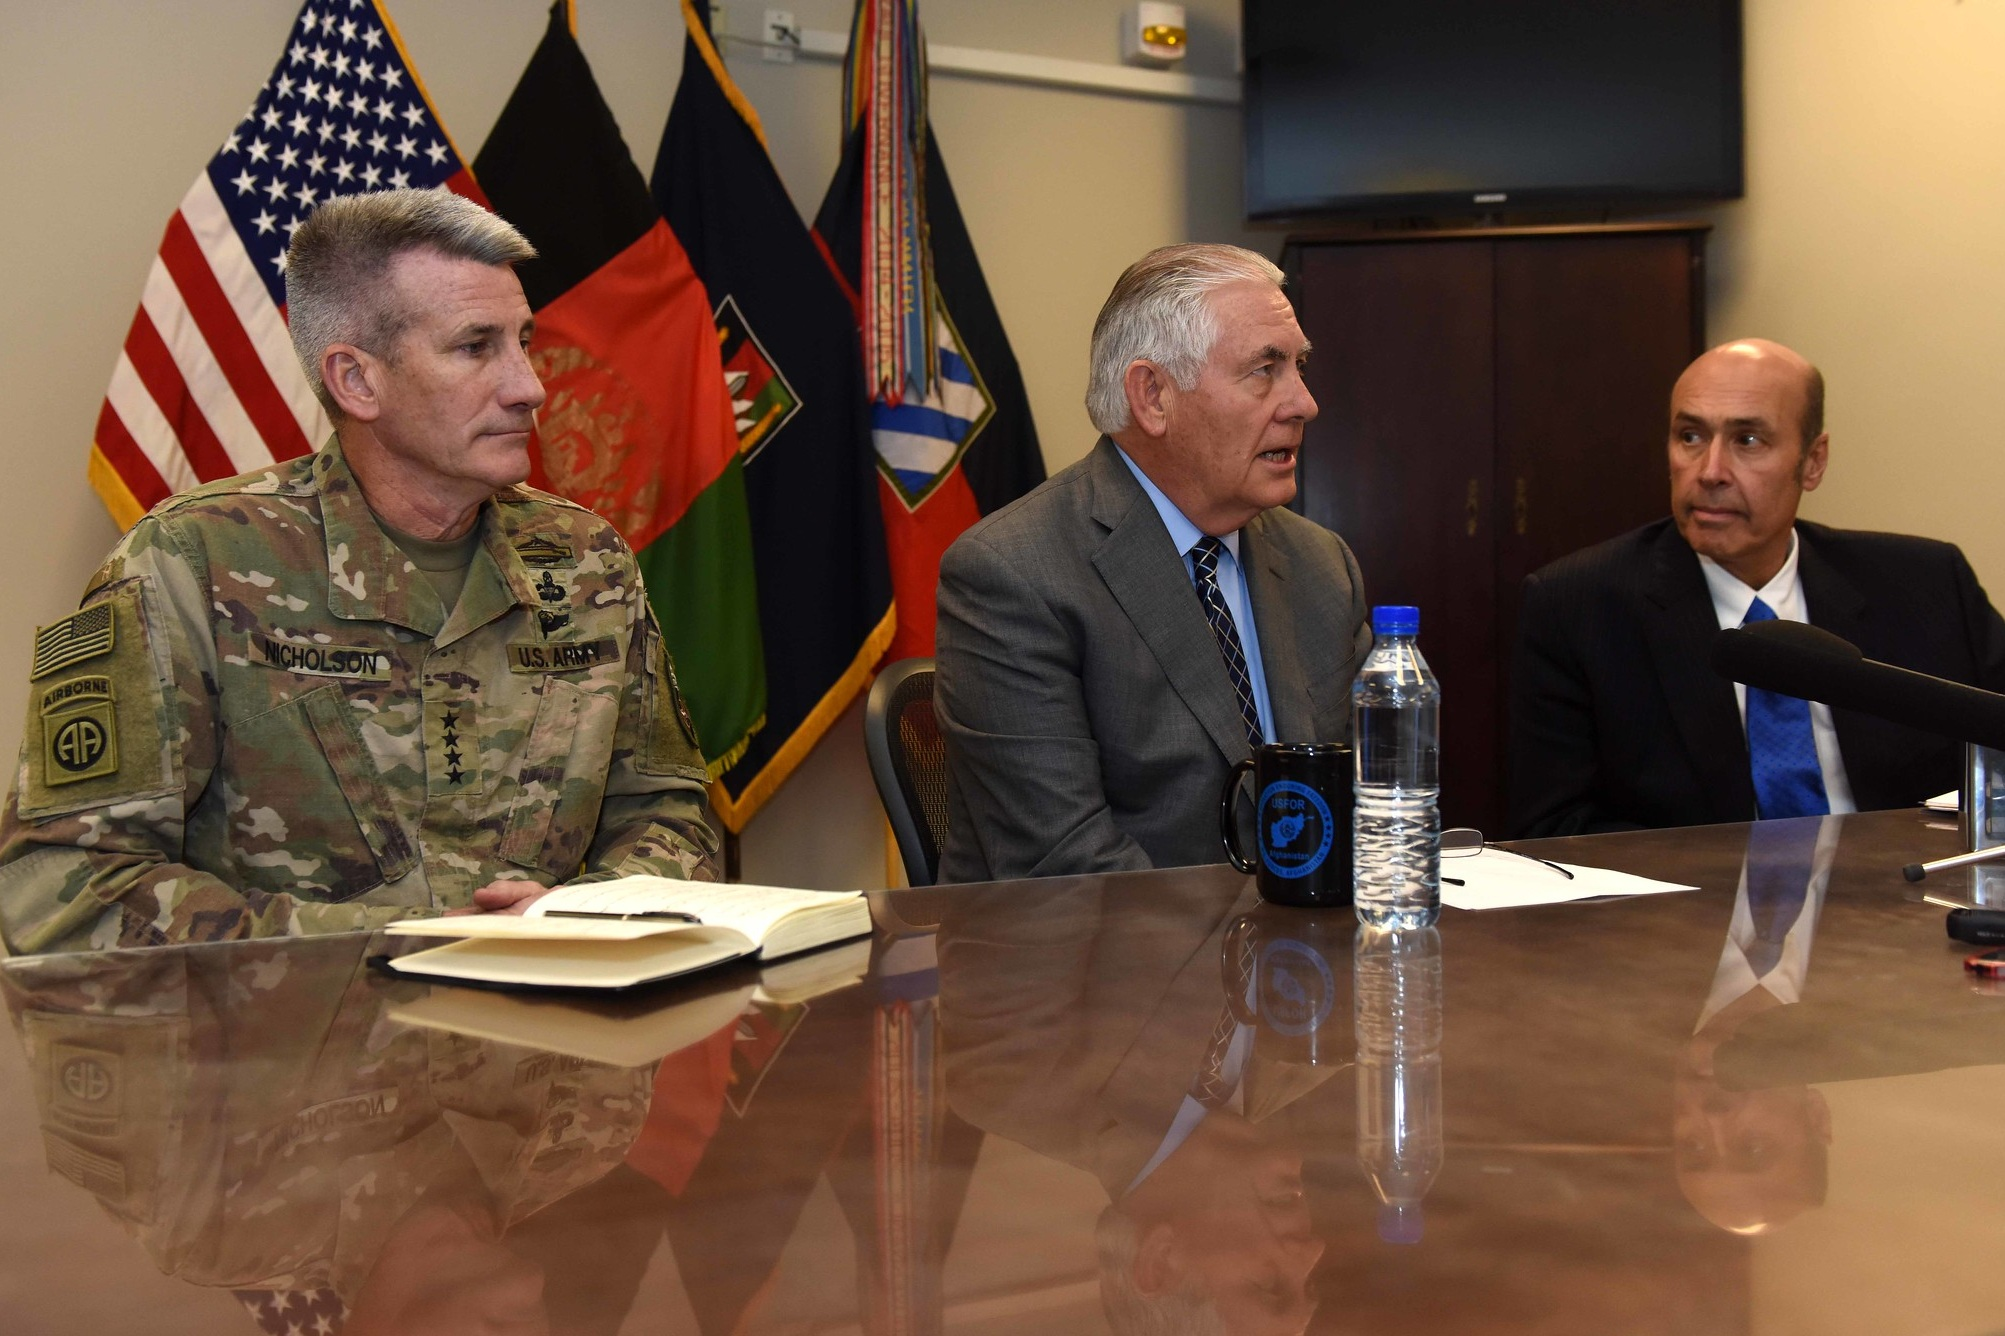 21. Afghanistan: The Transition From The Obama To The Trump Administration. Conversation With General John (Mick) Nicholson & Ambassador Hugo Llorens - General Nicholson and Ambassador Llorens discuss their unity of effort in the field and their partnership in developing the new Afghanistan strategy adopted by the Trump Administration.